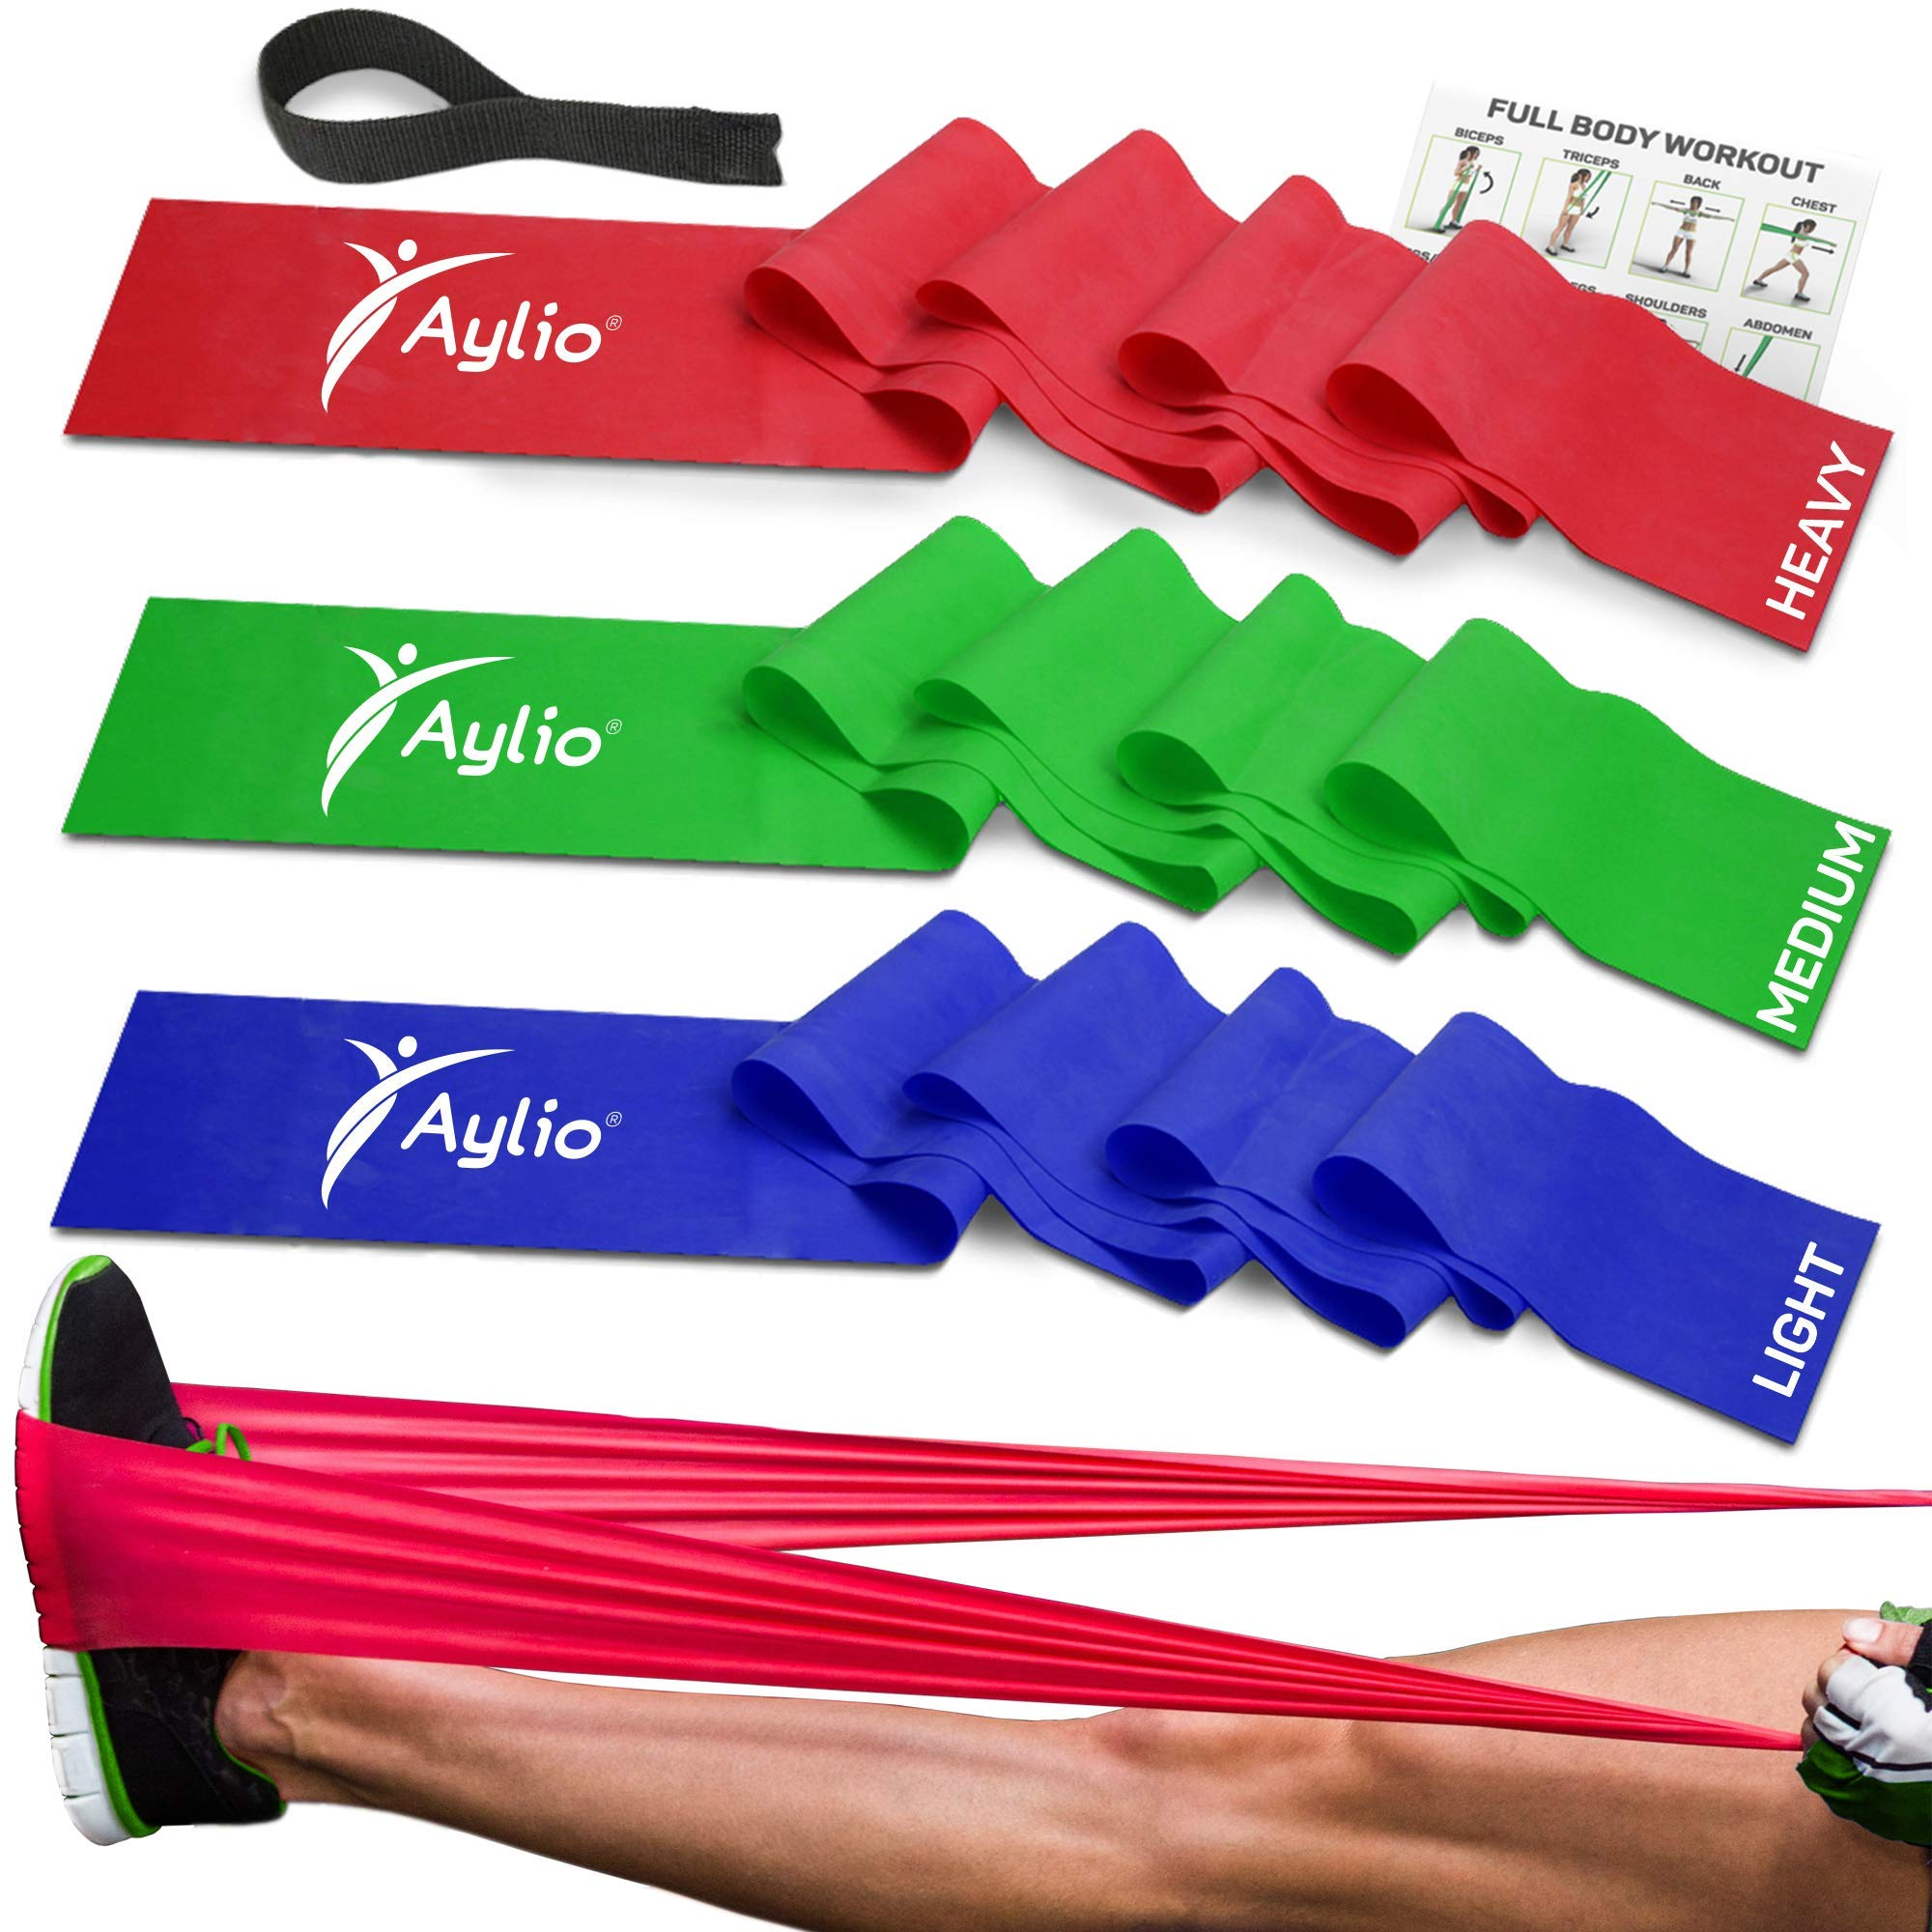 Premium Exercise Bands and Door Anchor | Fitness, Physical Therapy, Pilates Workout, Stretch | 6 Feet Long by Aylio